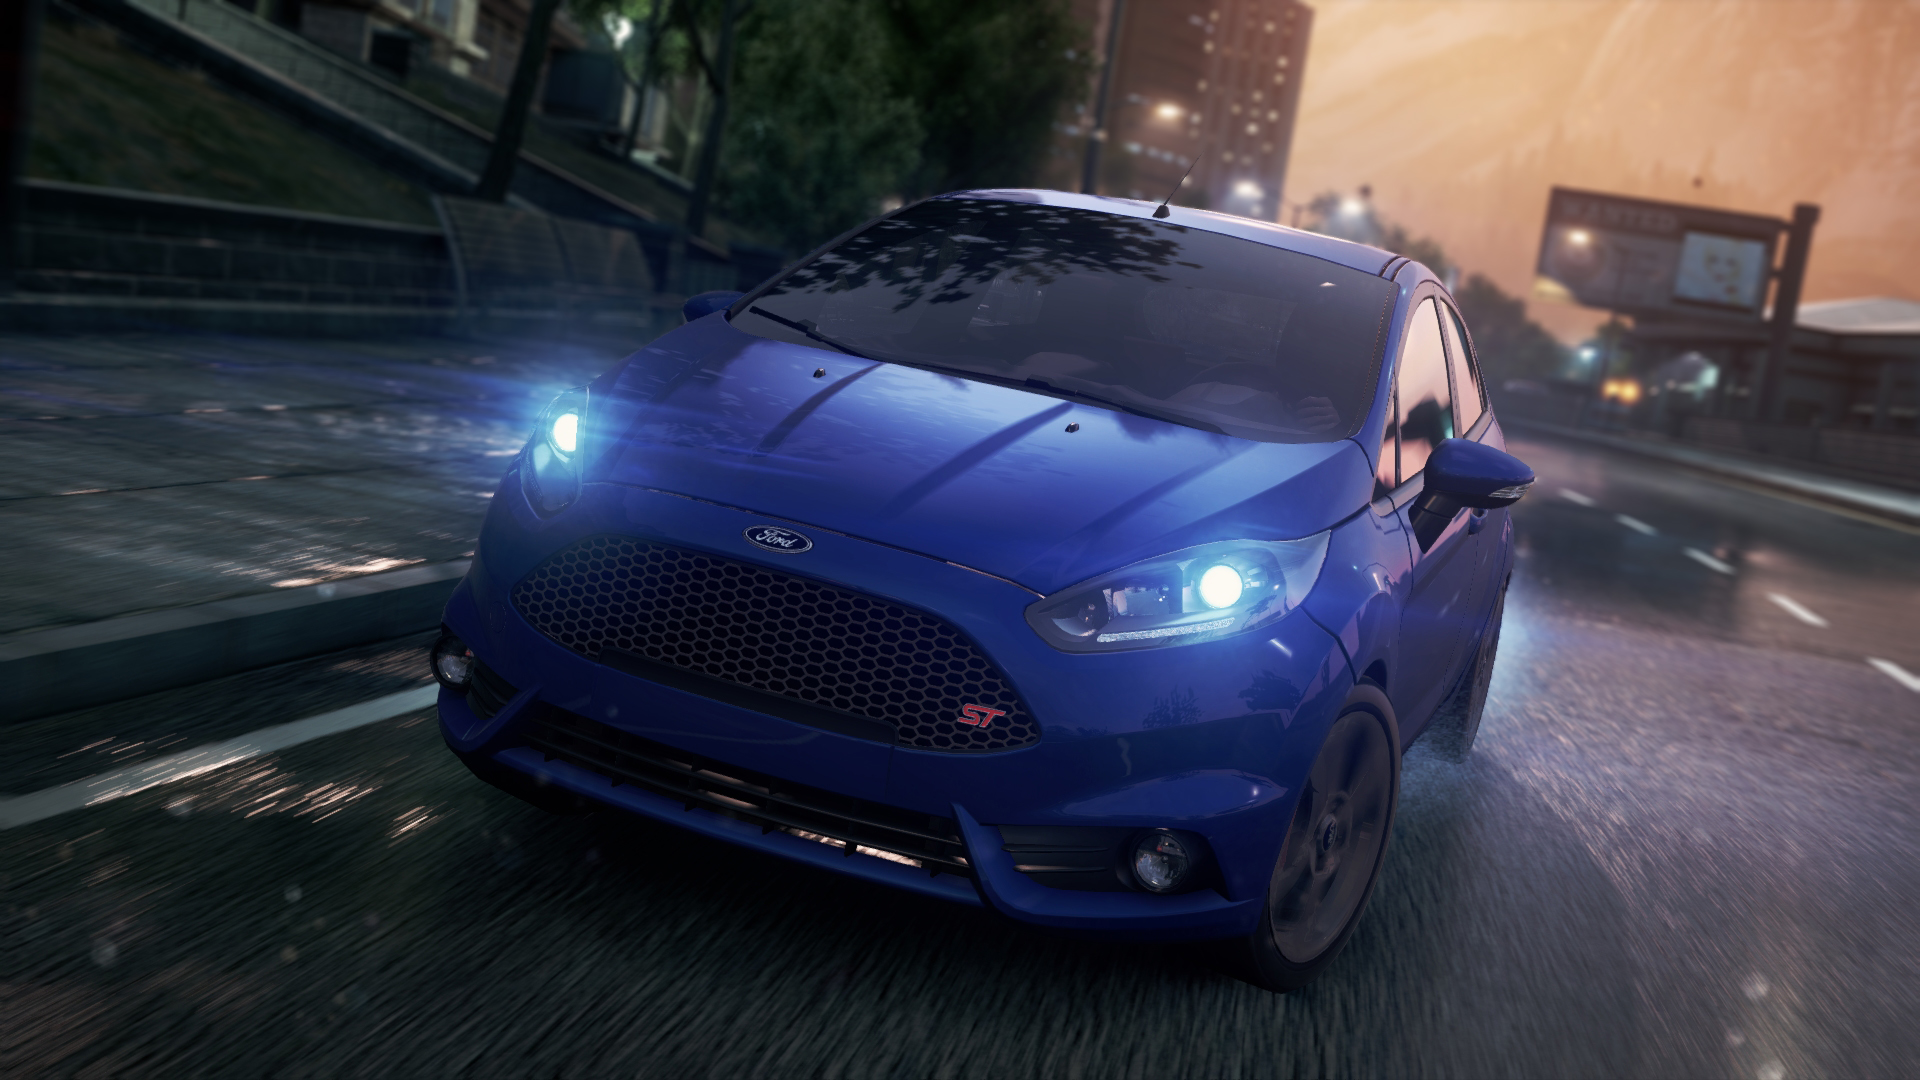 Ford Fiesta St Need For Speed Wiki Fandom Powered By Wikia